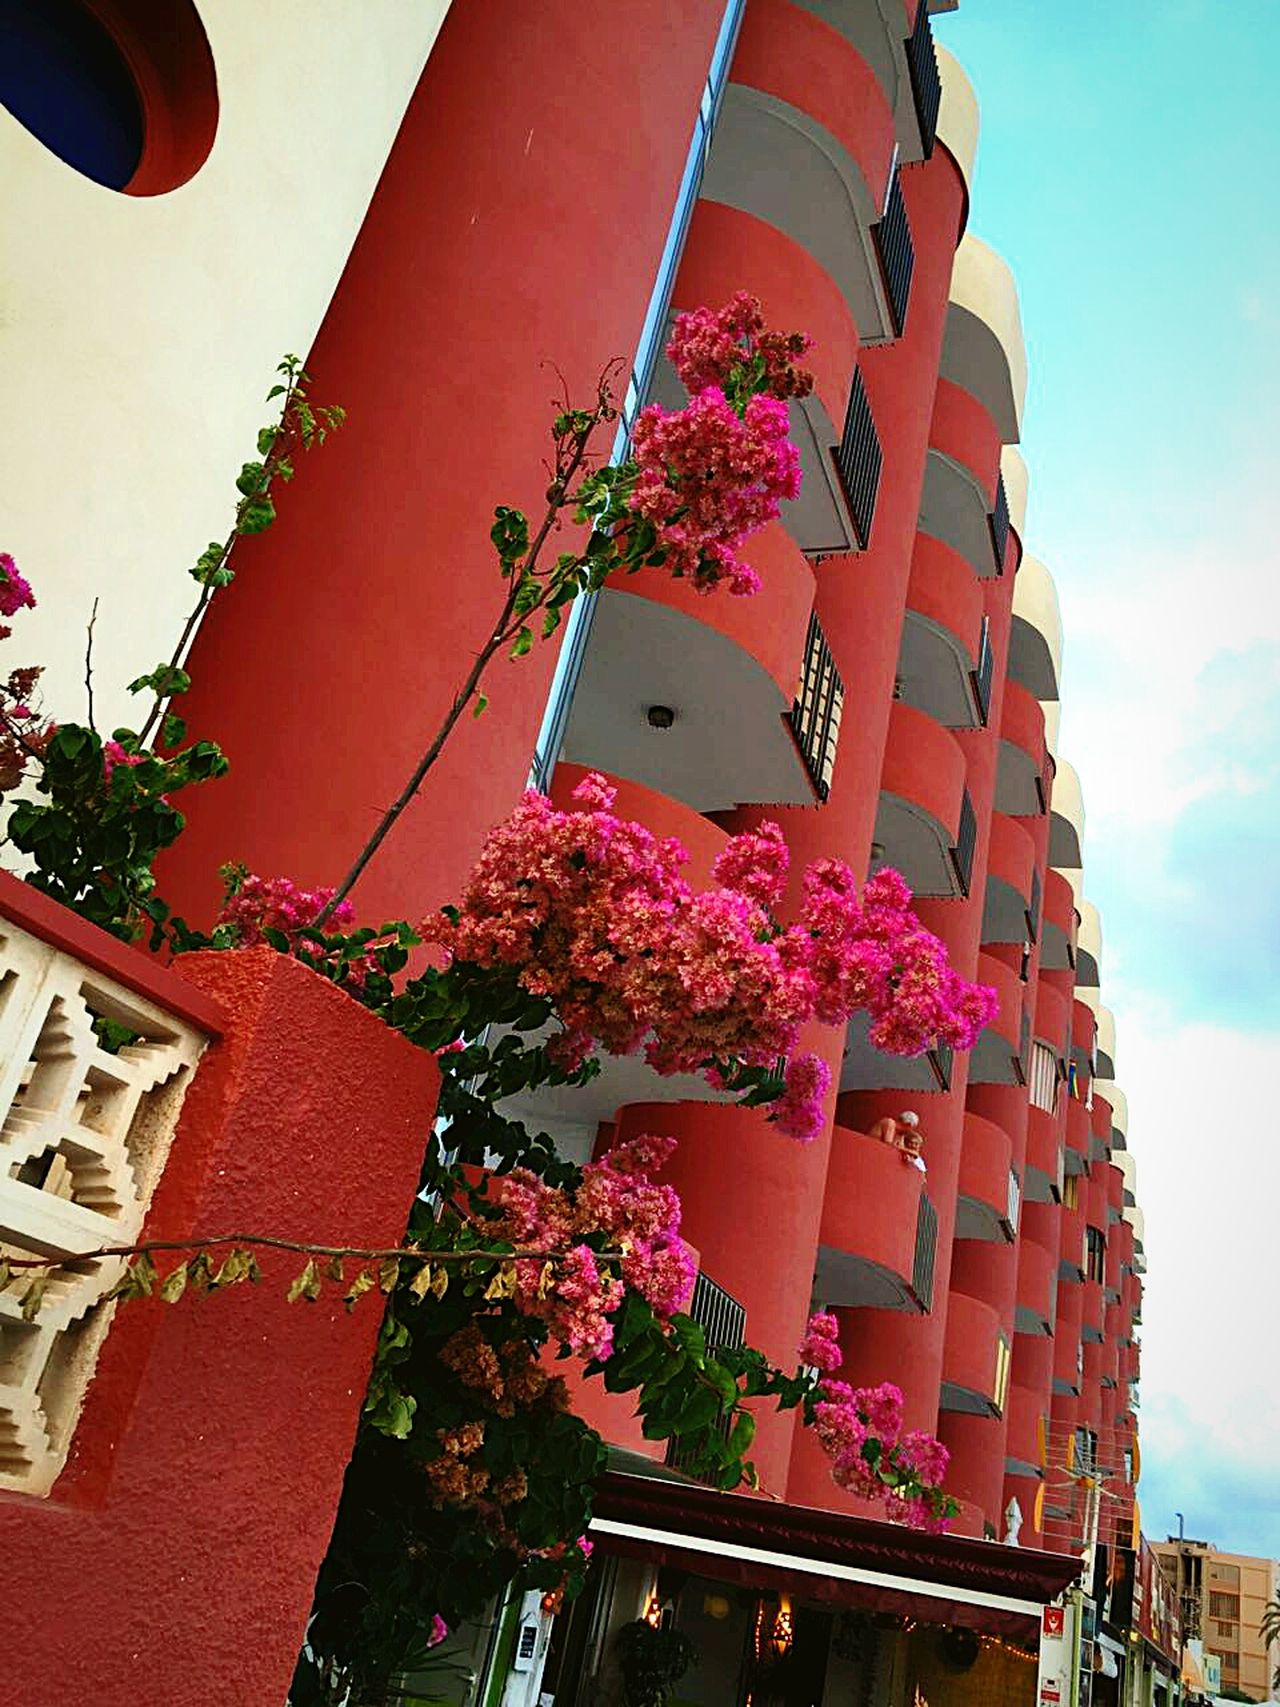 Architecture Outdoors Street City City Life Lookingup 🏩🌇🚶😁 Summer Relaxing Time Life In Colors Place Of Interest Beach Life Enjoying The View House Building Exterior Travel Photography Calpe Spain 😁🚶🌐🌇